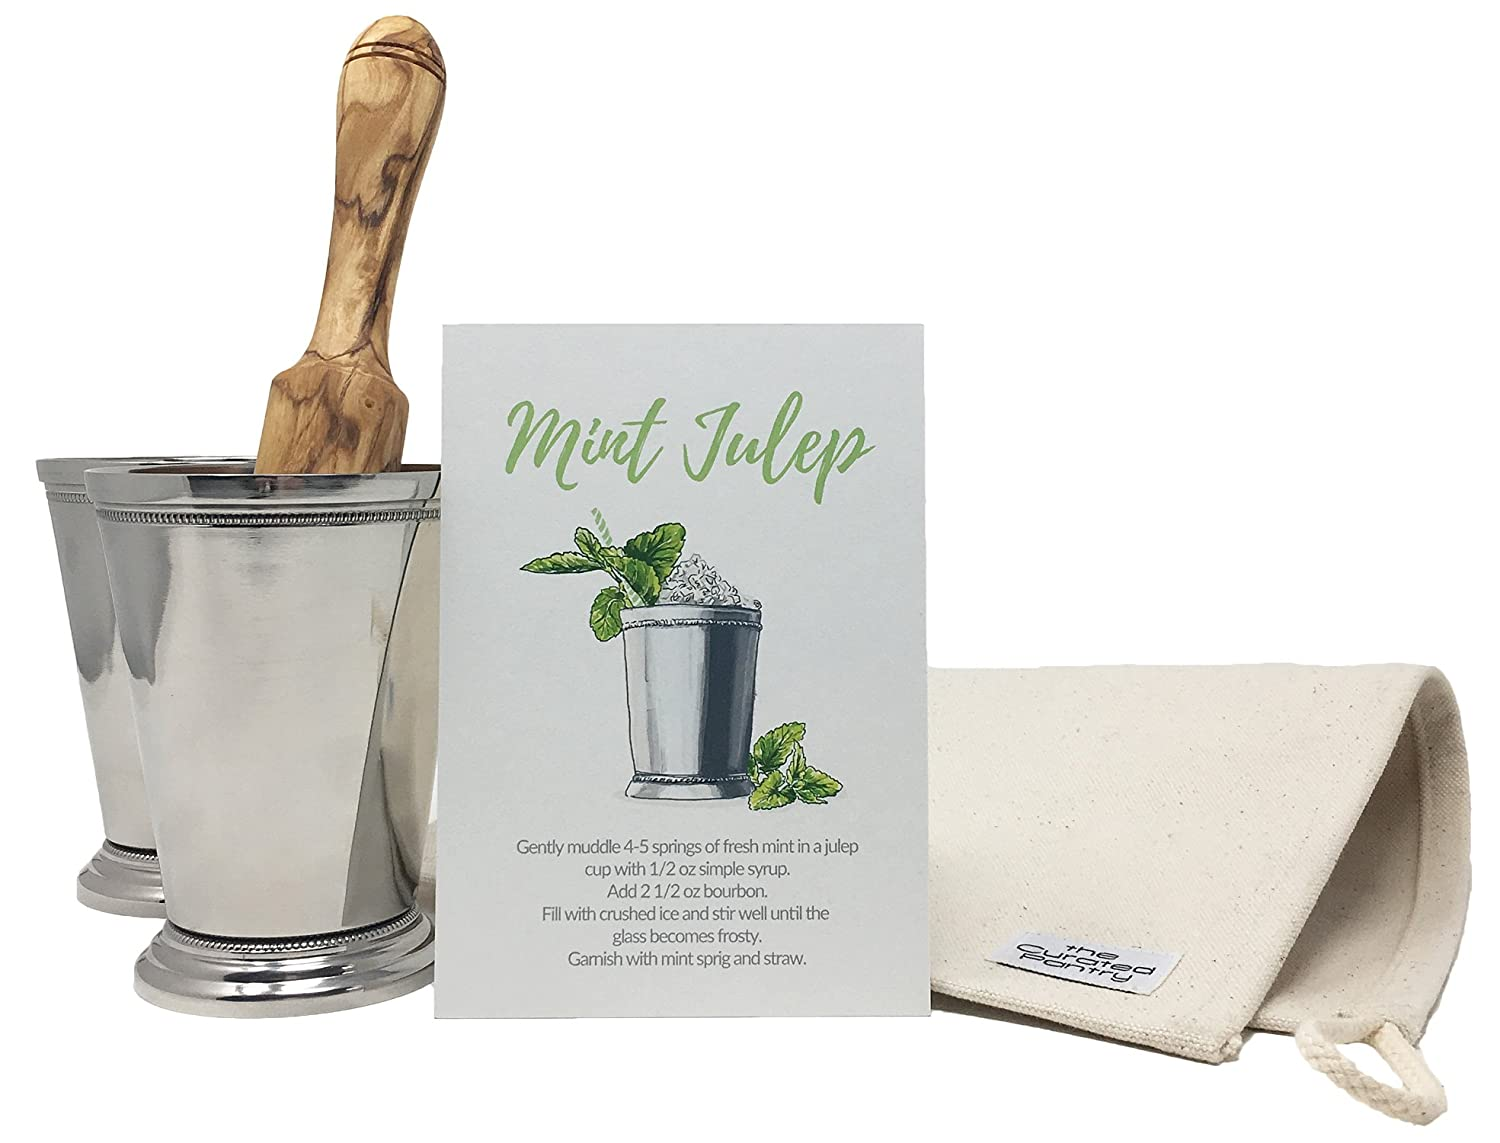 12oz Cups 2 Lewis Bag 5 items Mint Julep Cocktail Essential Tool Kit - Muddler//Mallet and Recipe Card